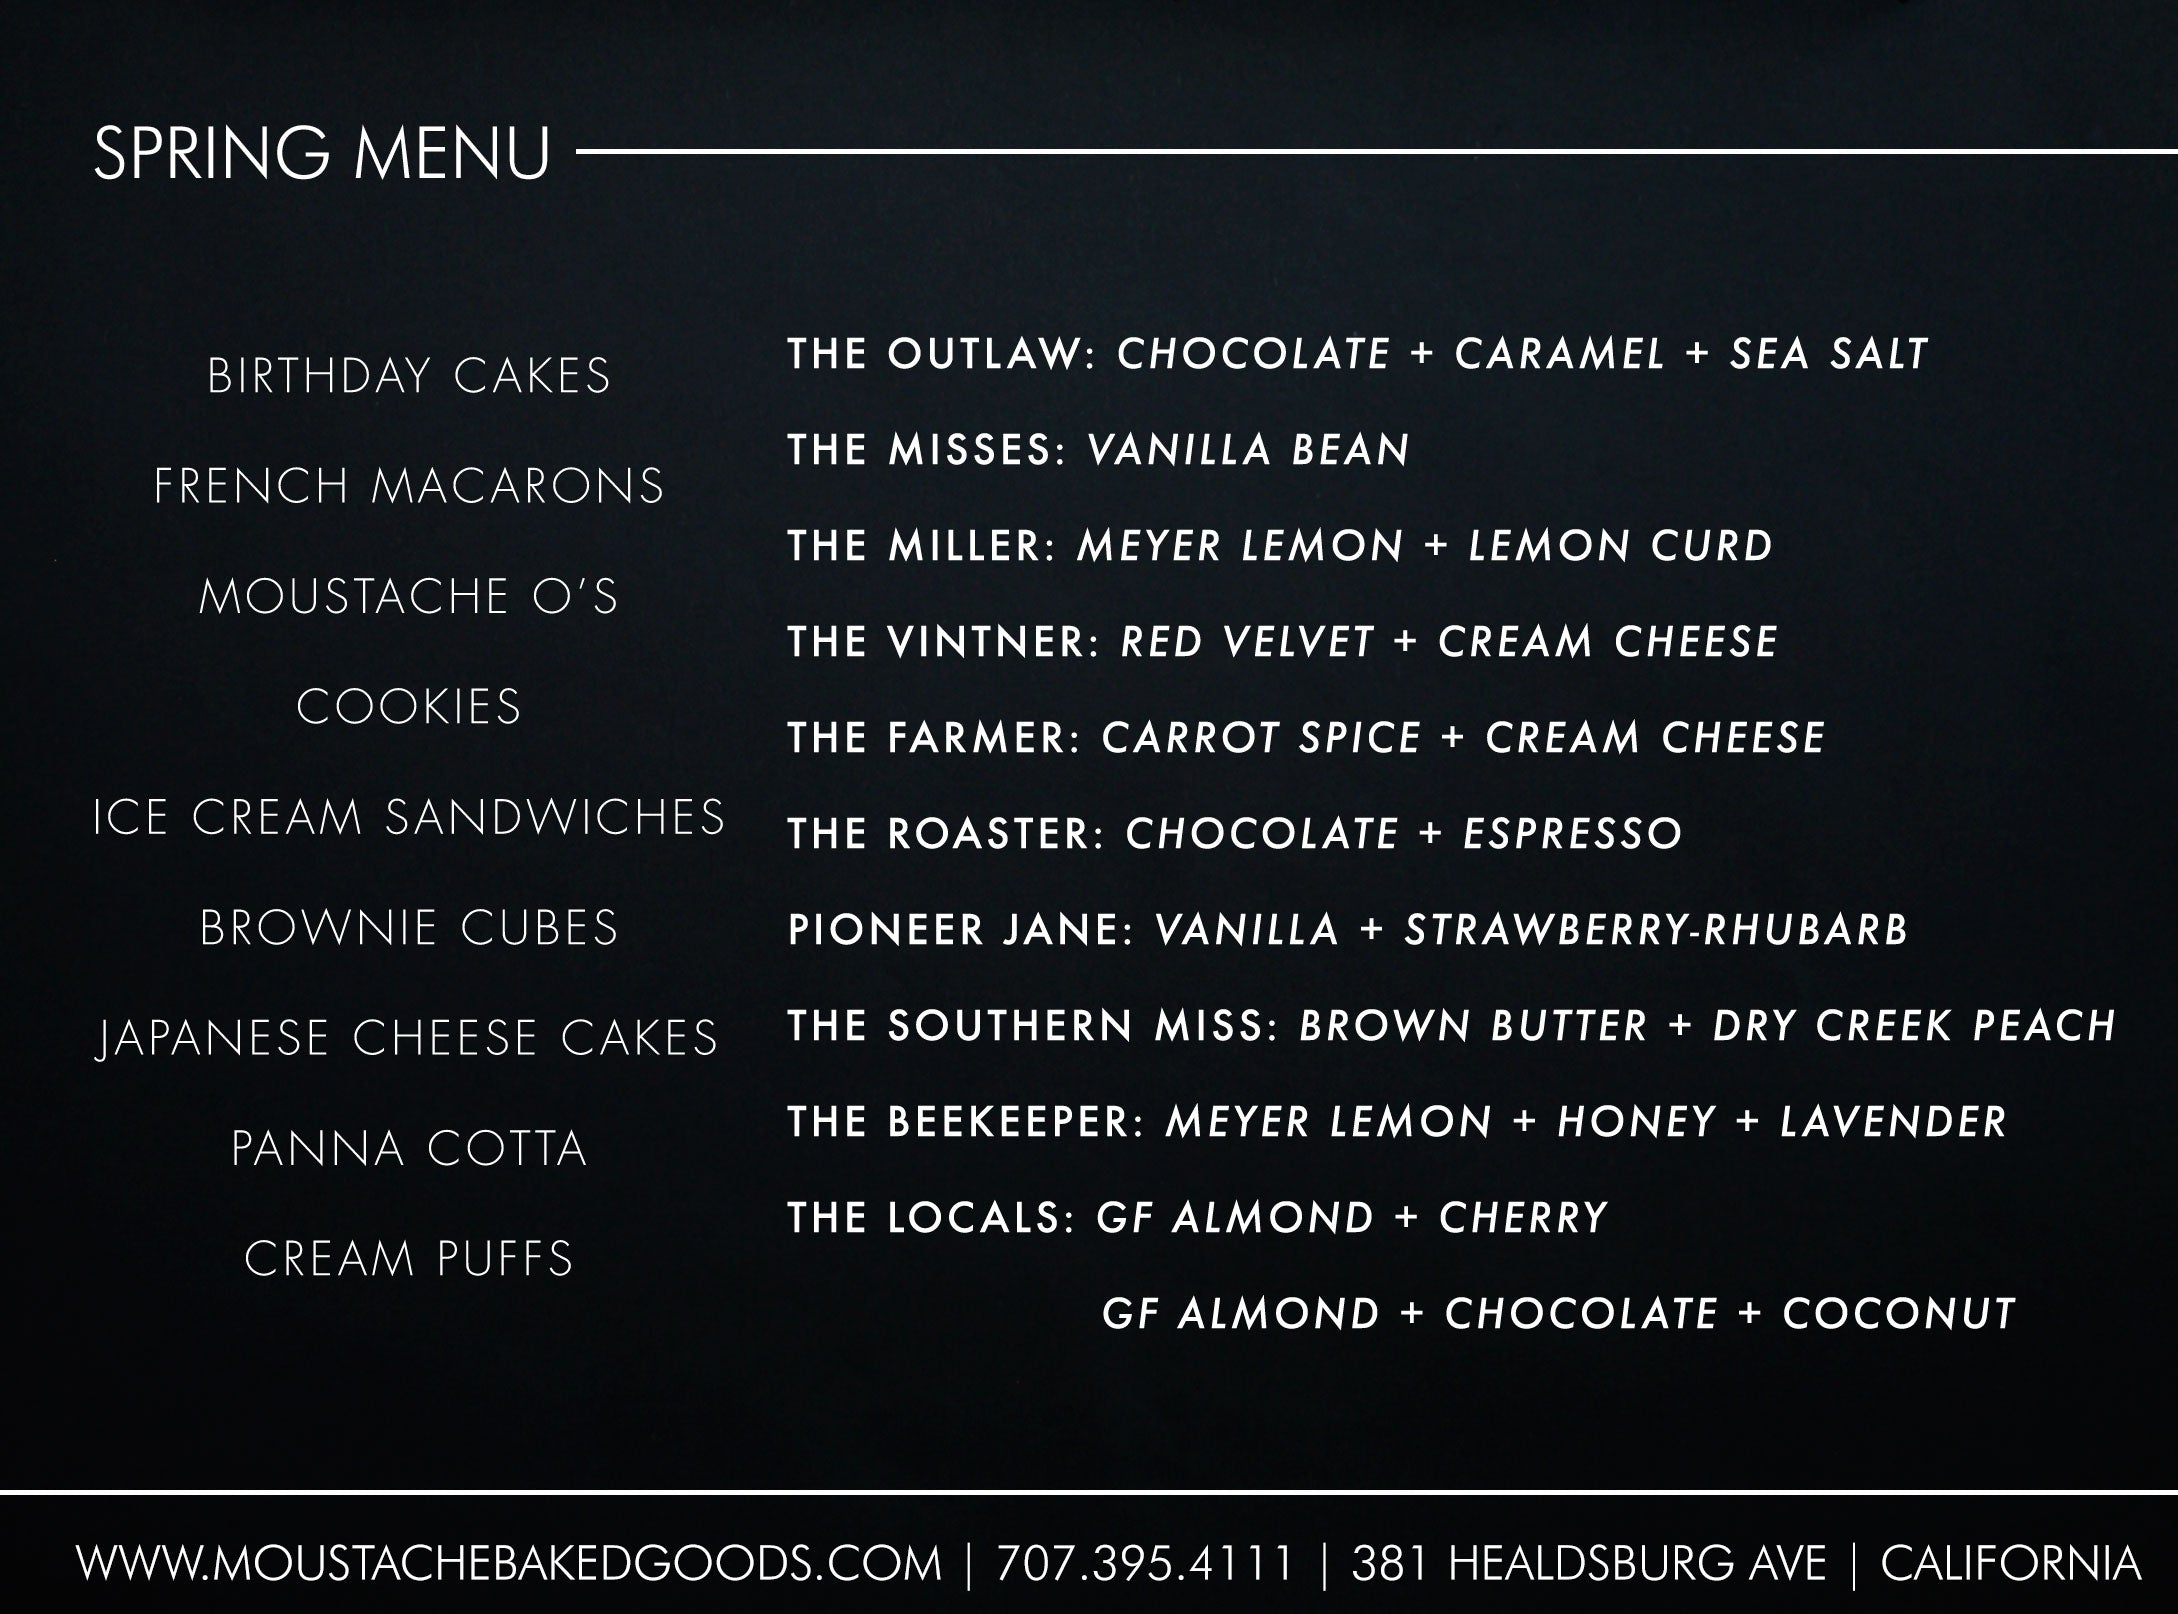 Spring Menu 2015 / Moustache Baked Goods